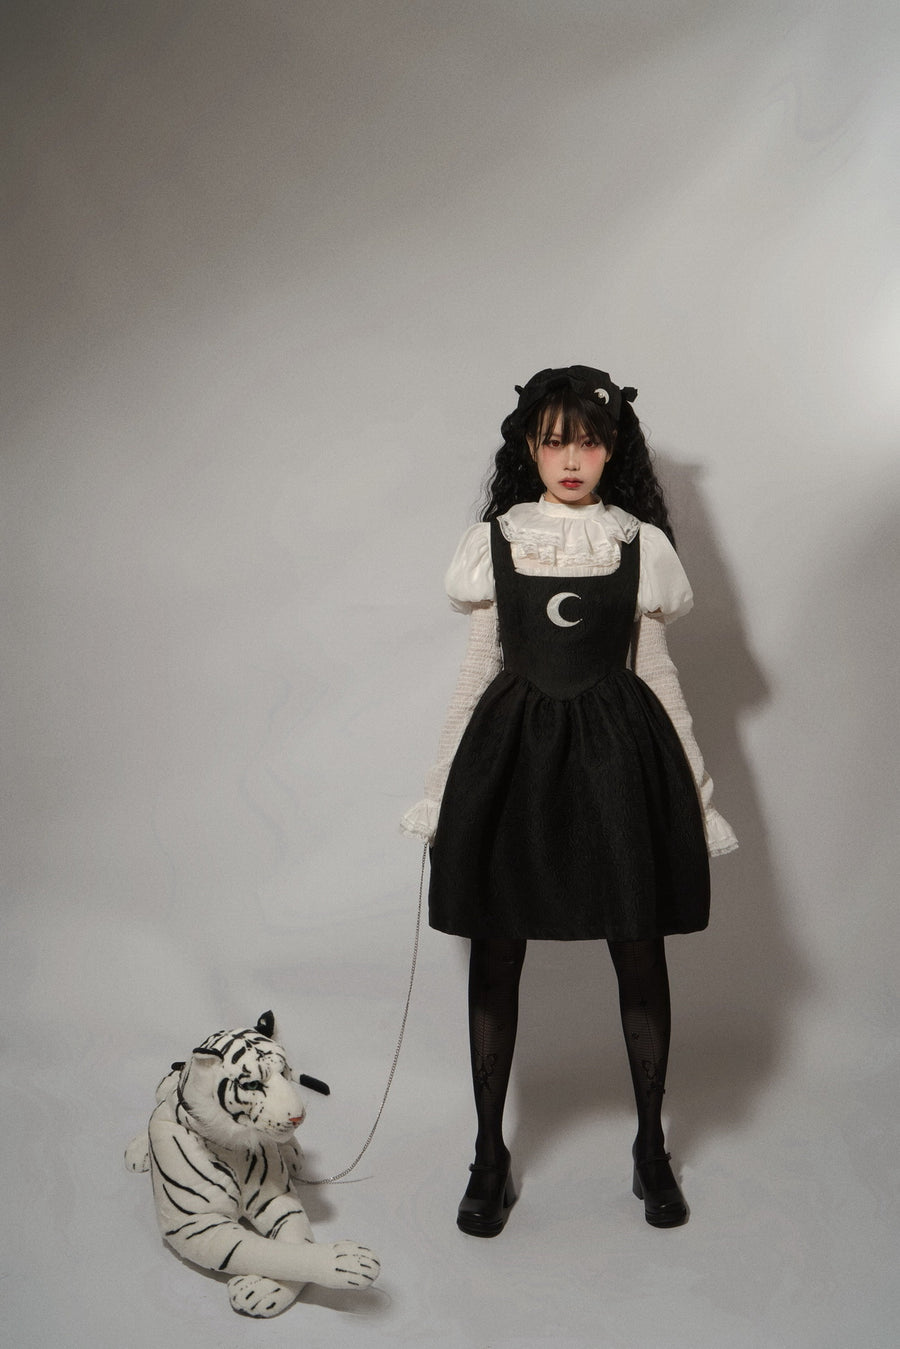 [Nololita Official] Rose Fantasy Vintage Moon Dress [Premium Selected]